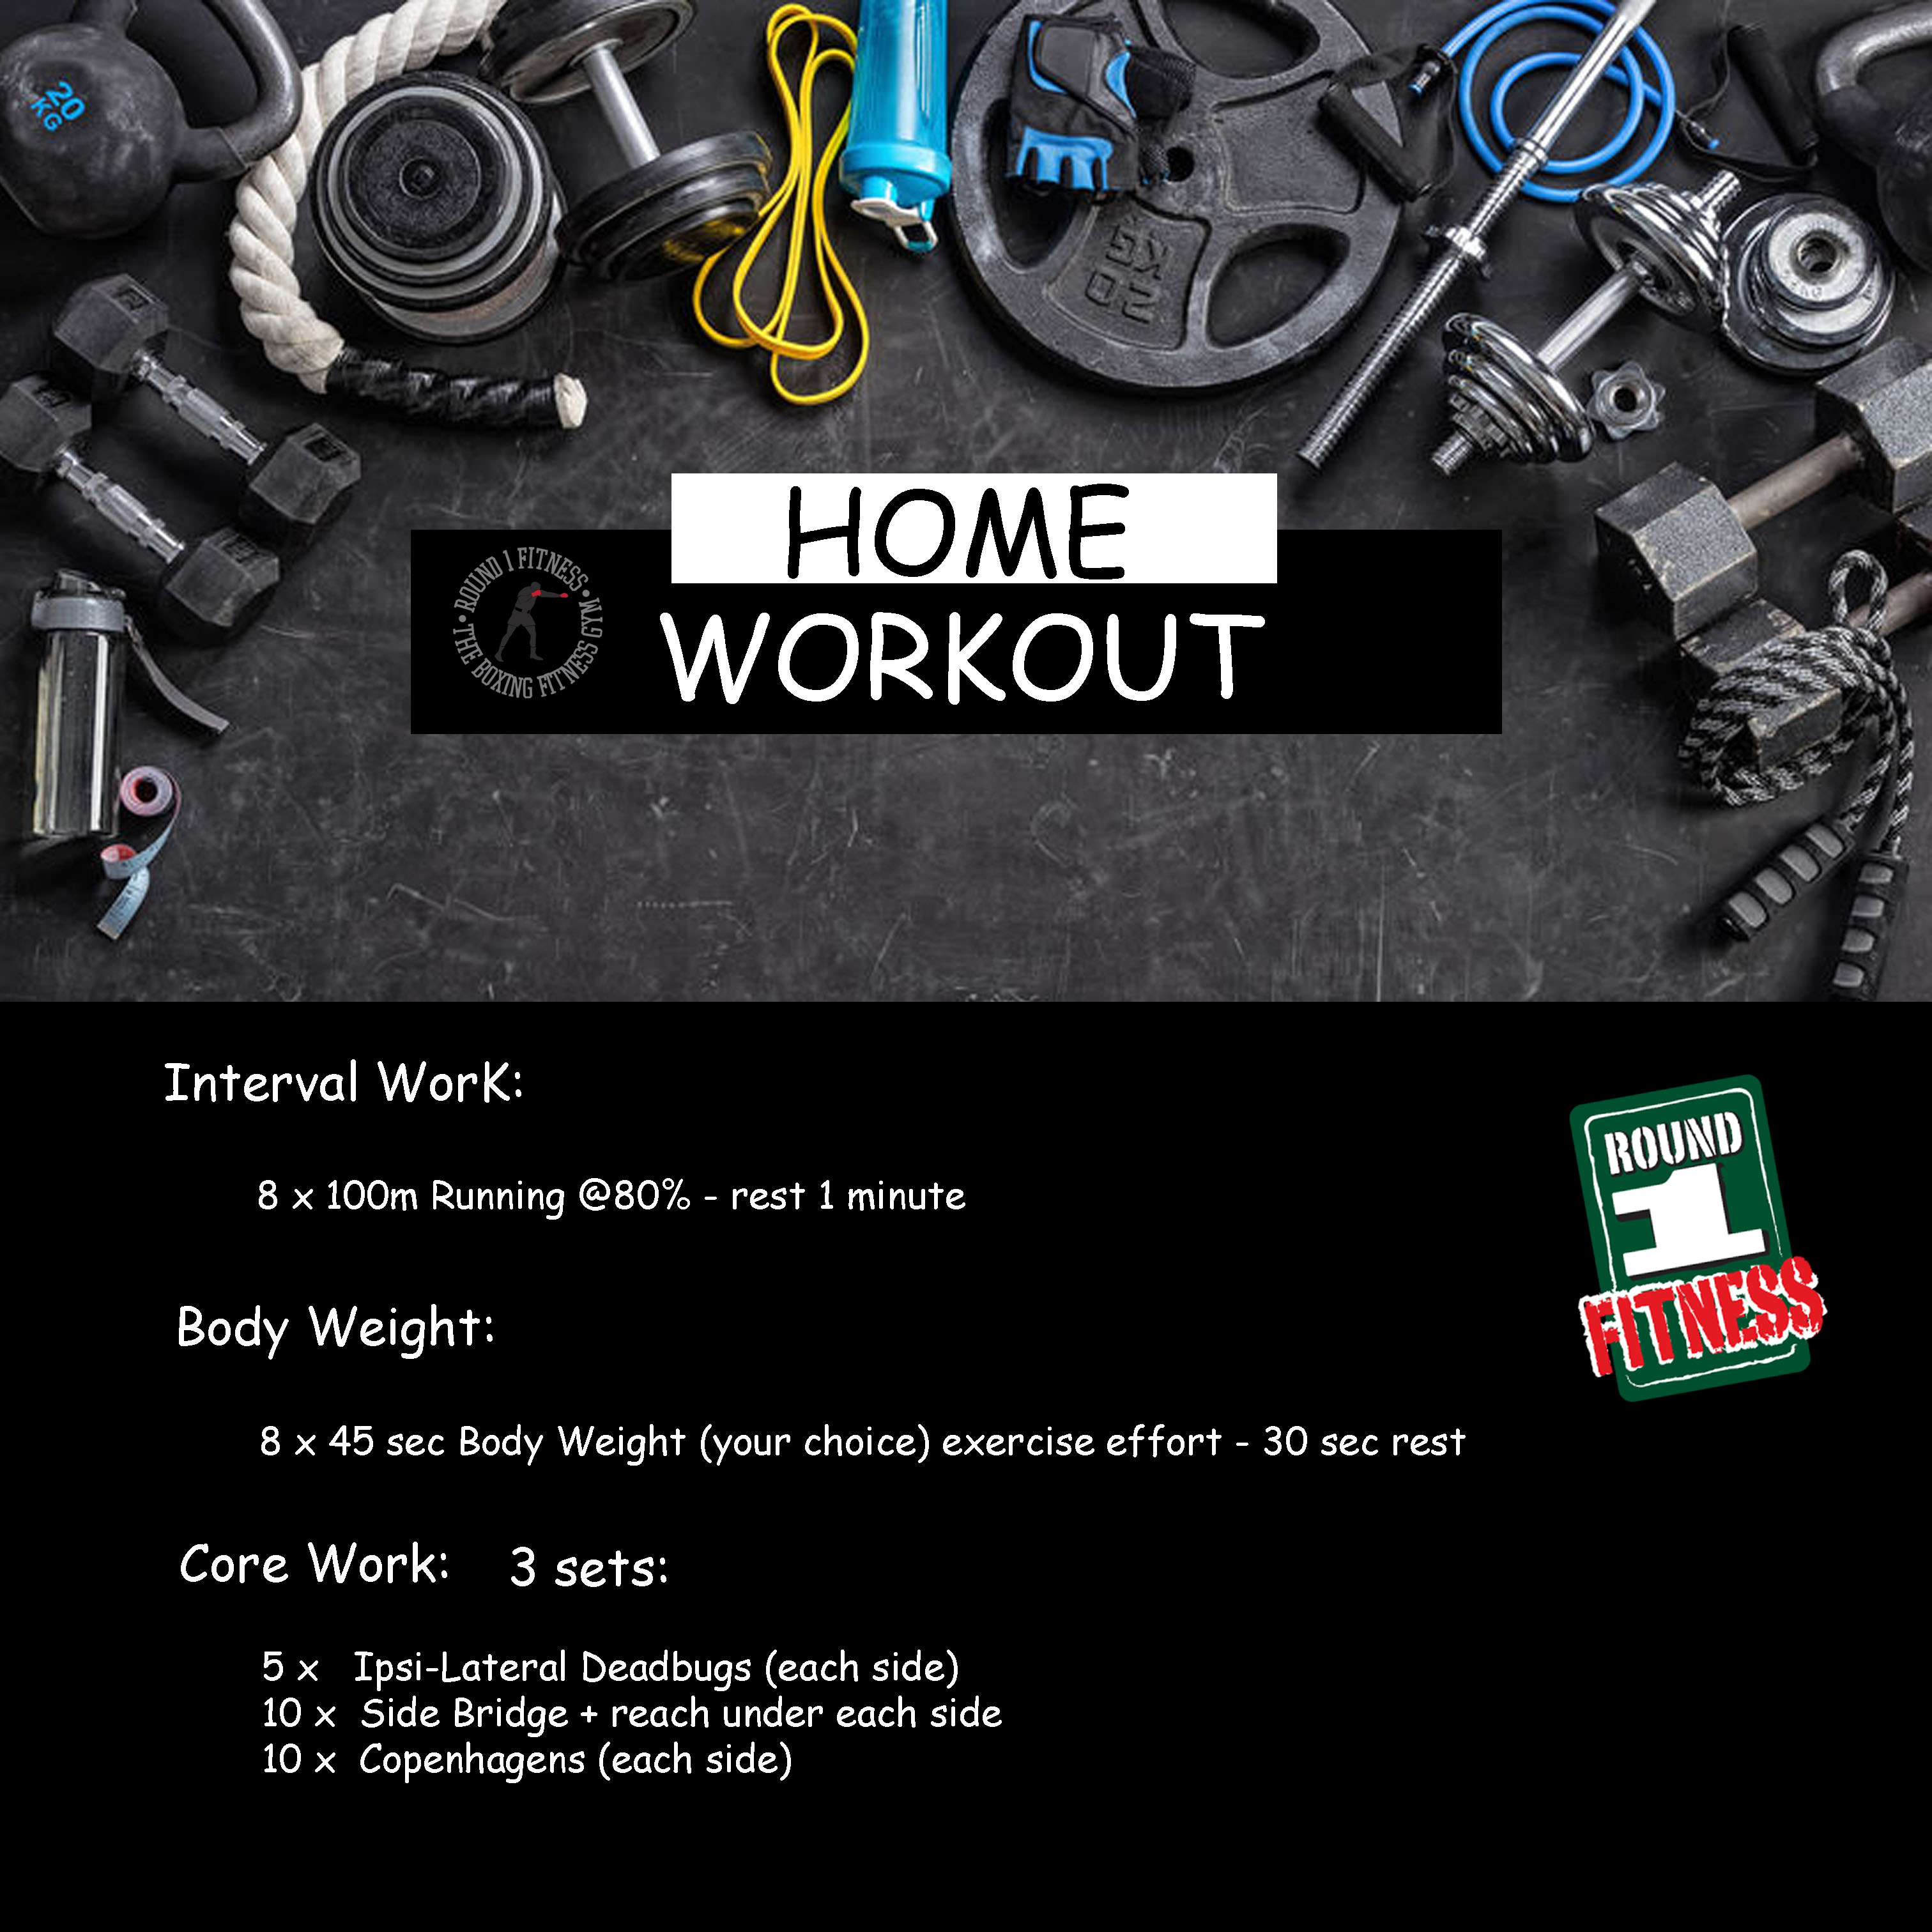 Home Workout:  Sunday, May 3rd